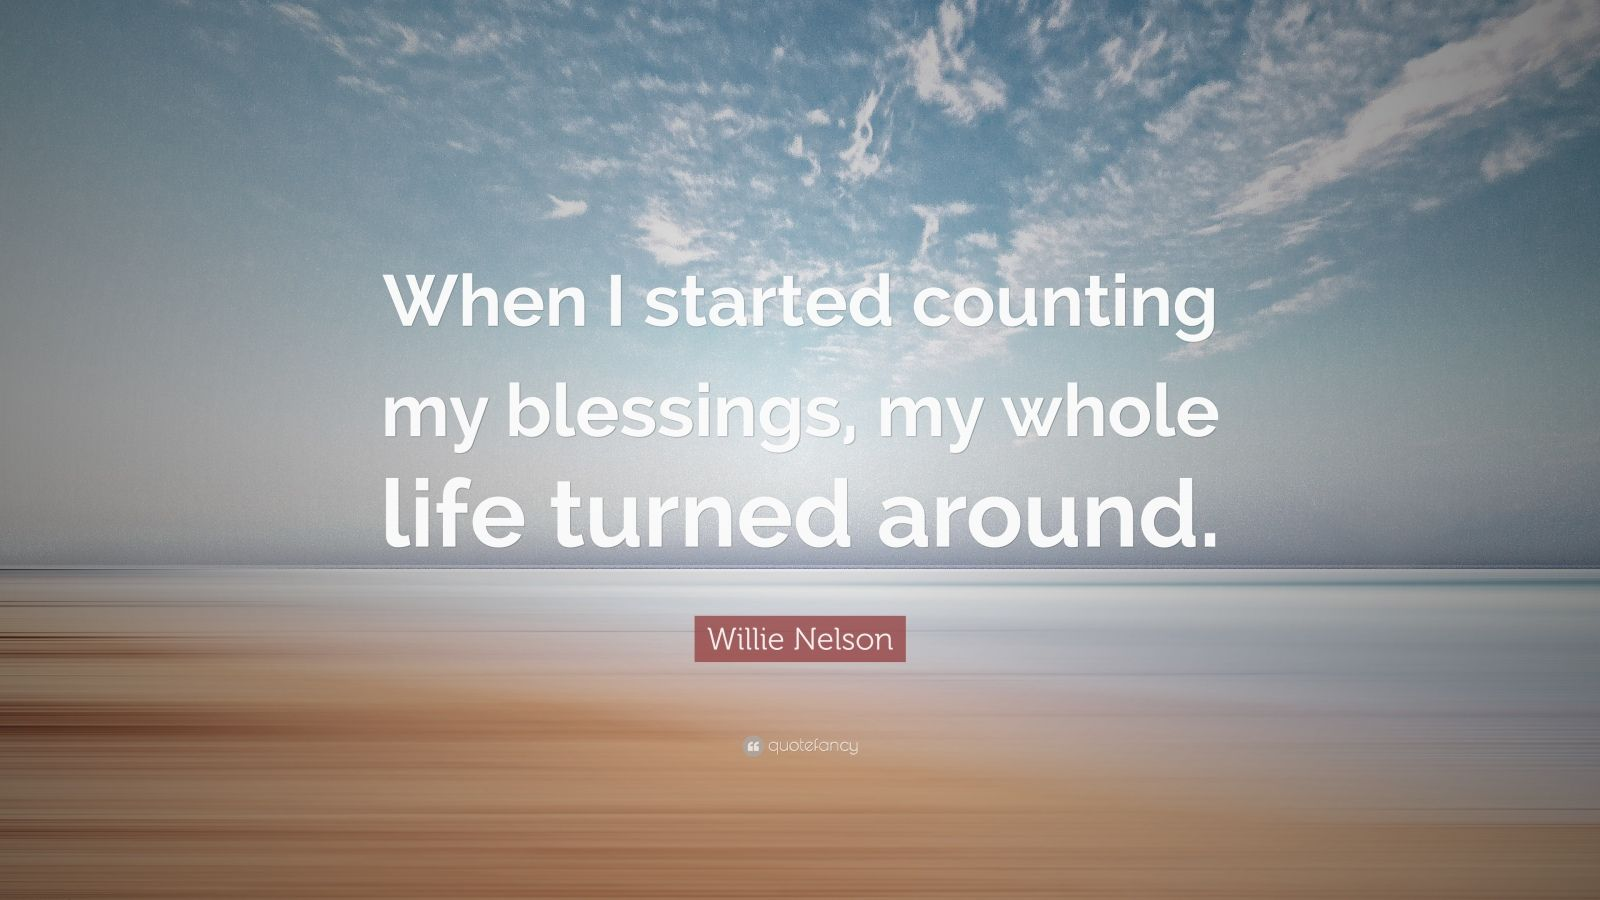 When i started counting my blessings quote